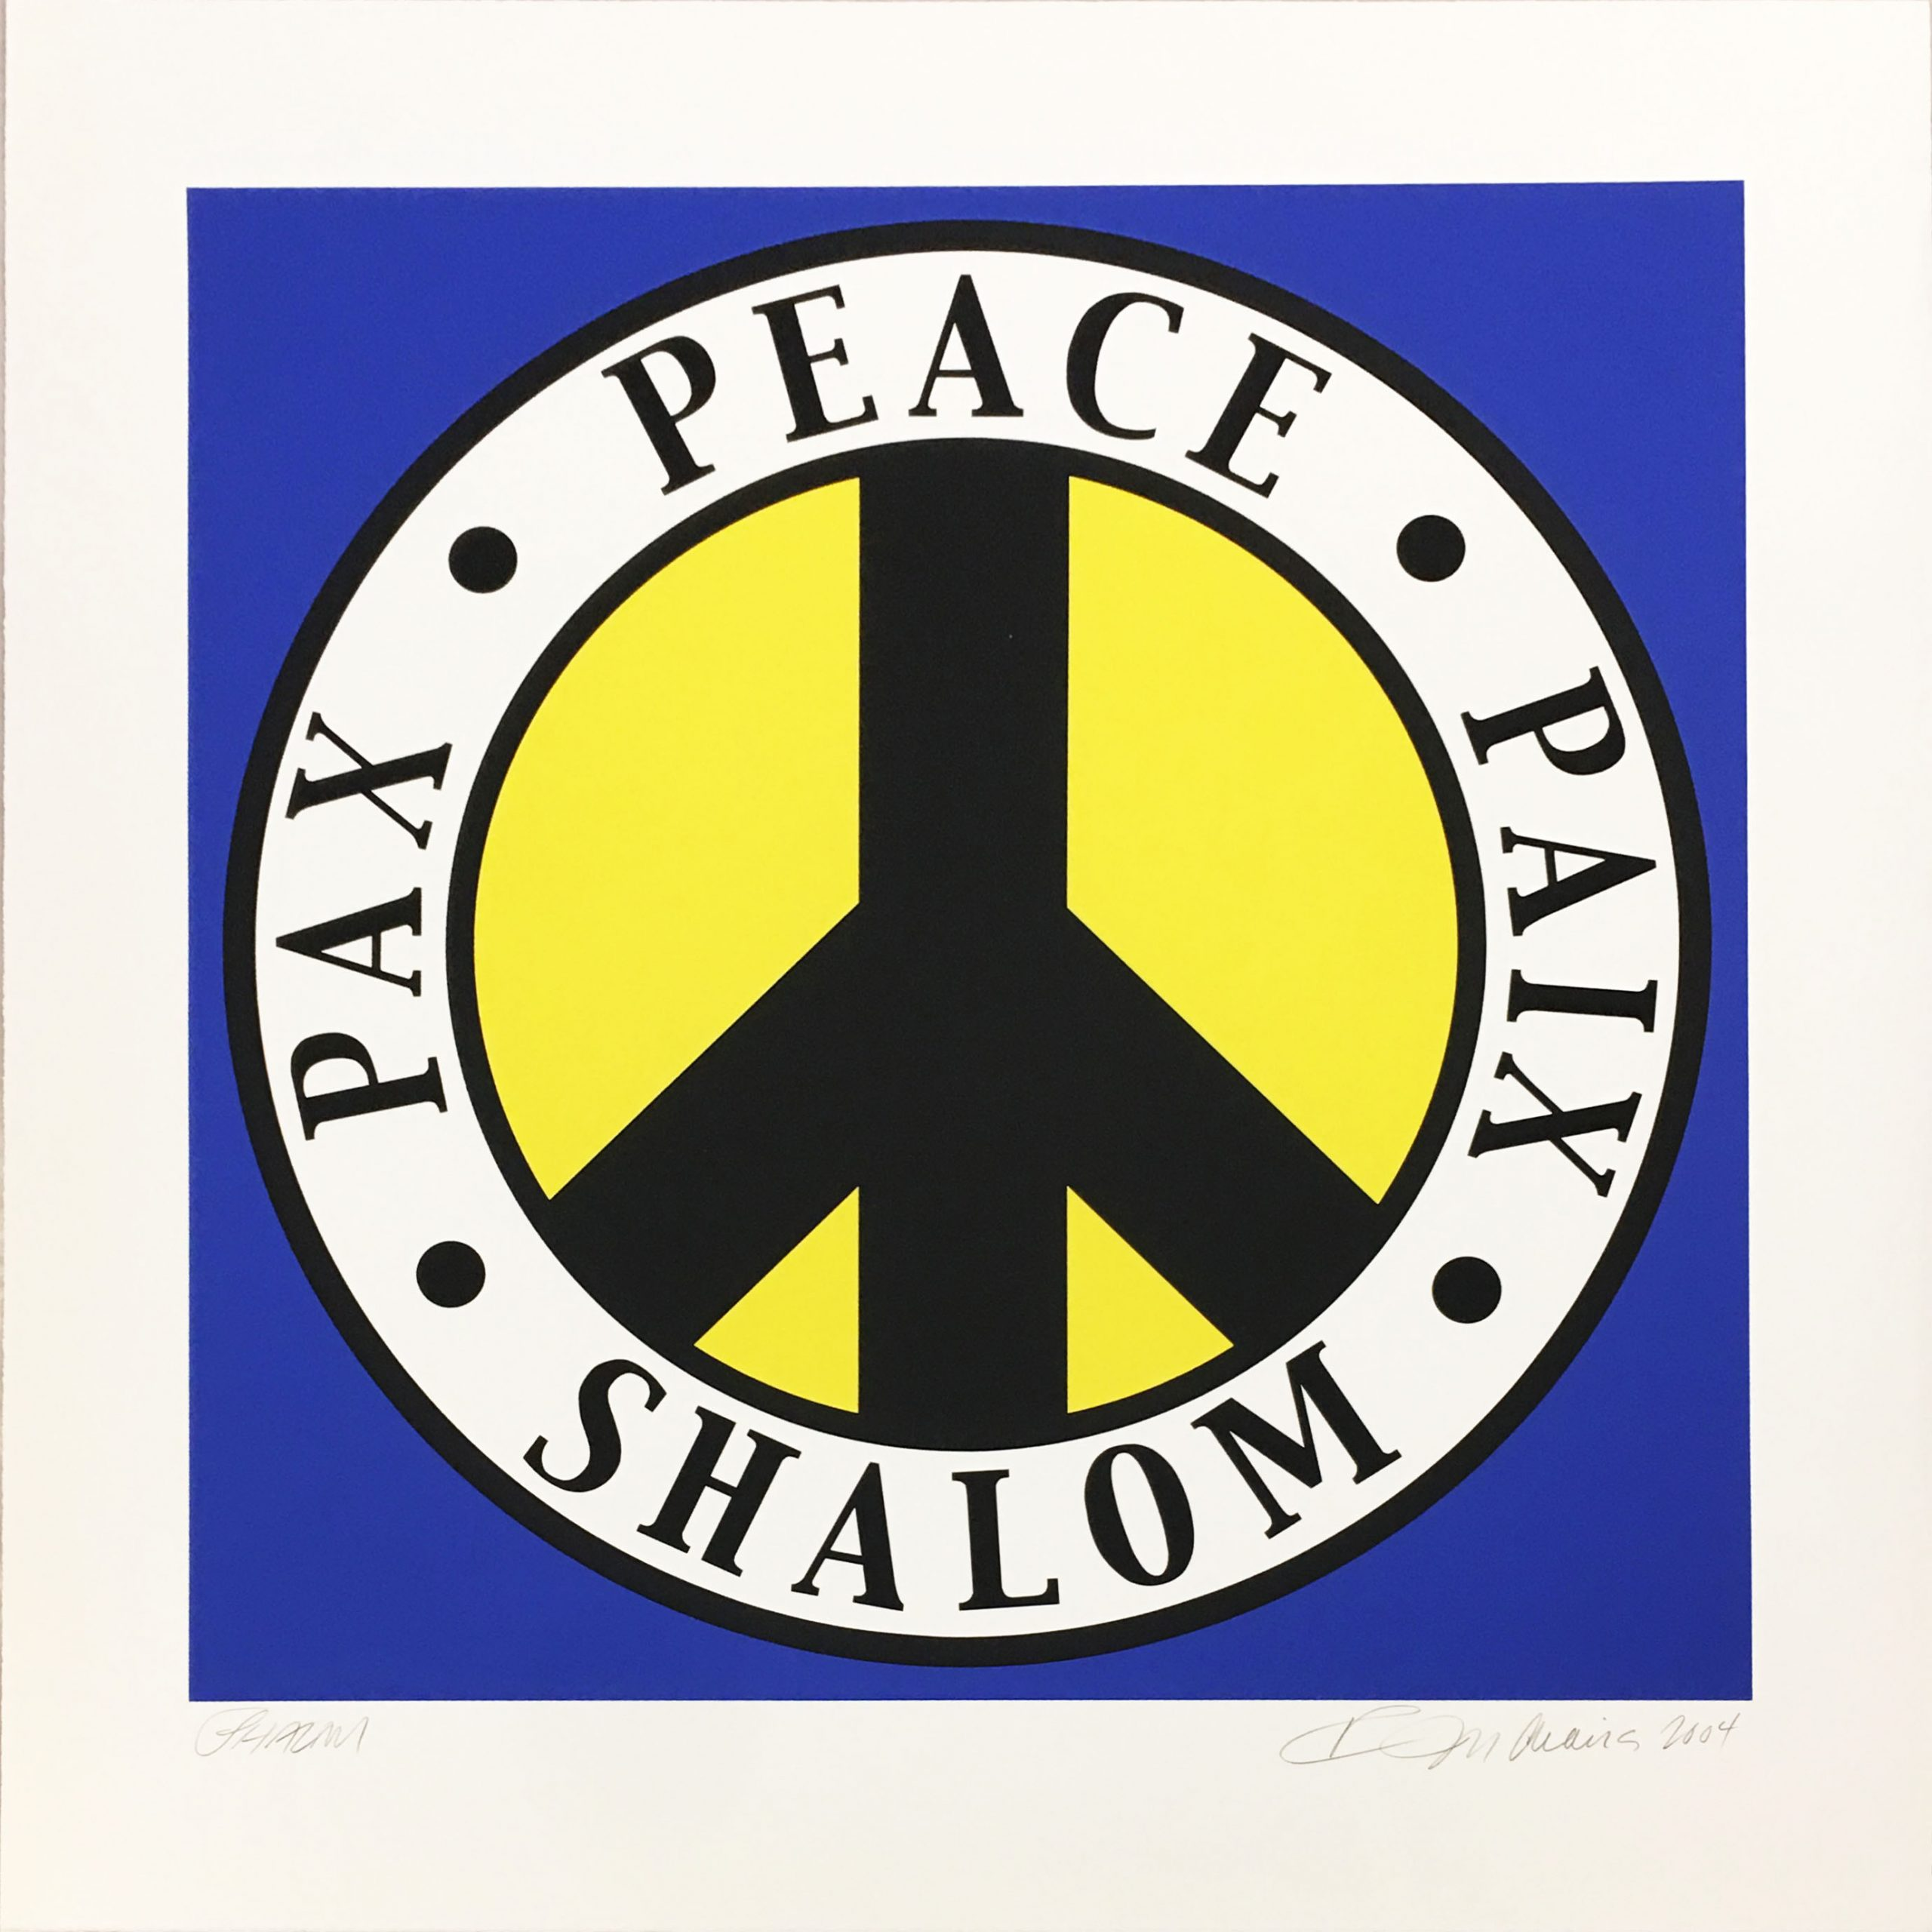 Shalom by Robert Indiana